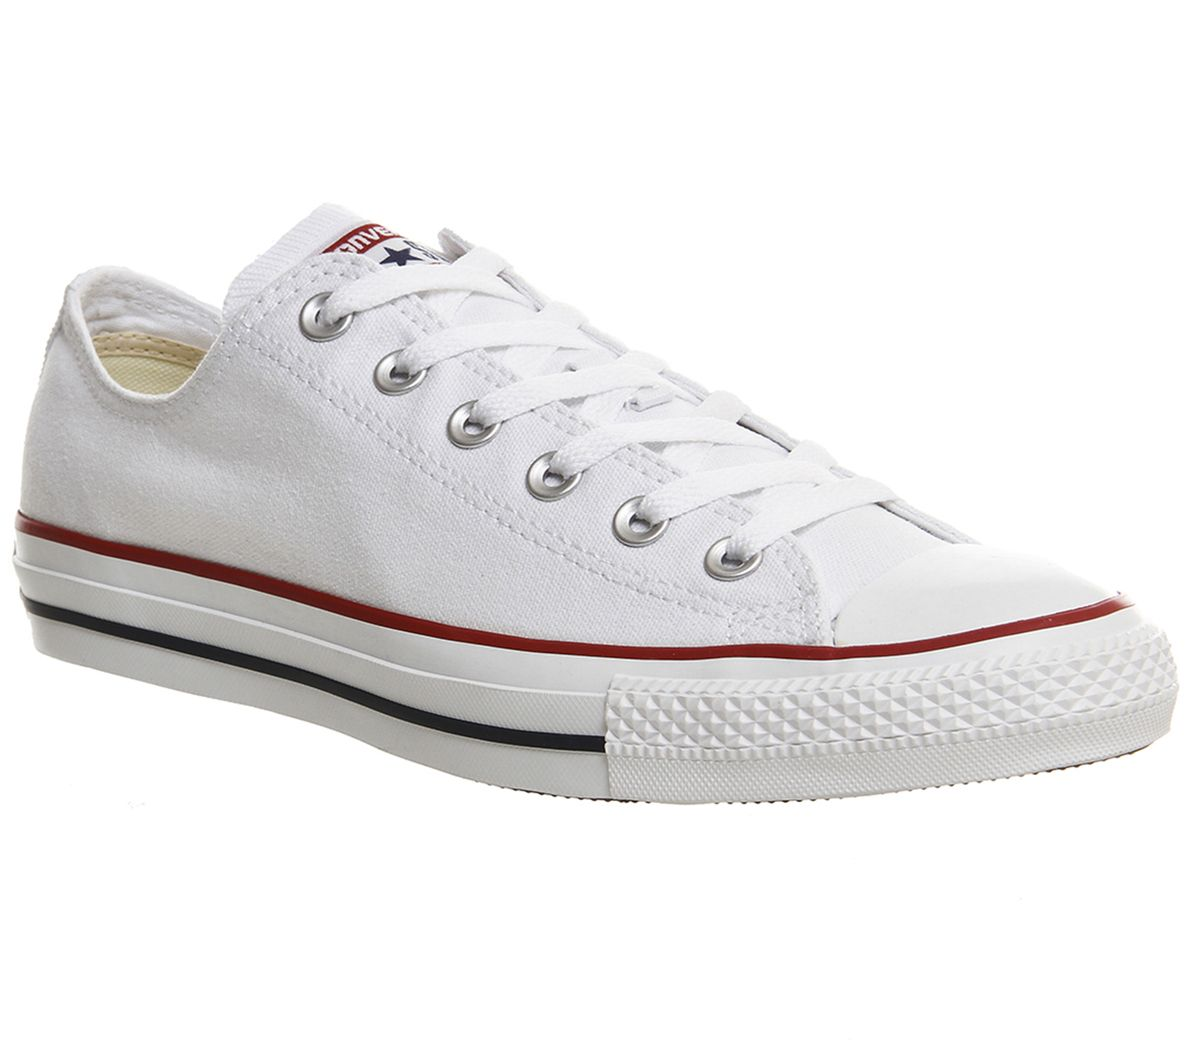 75847fc22da5 Sentinel Womens Converse White Canvas Lace Up Trainers Size UK 6  Ex-Display